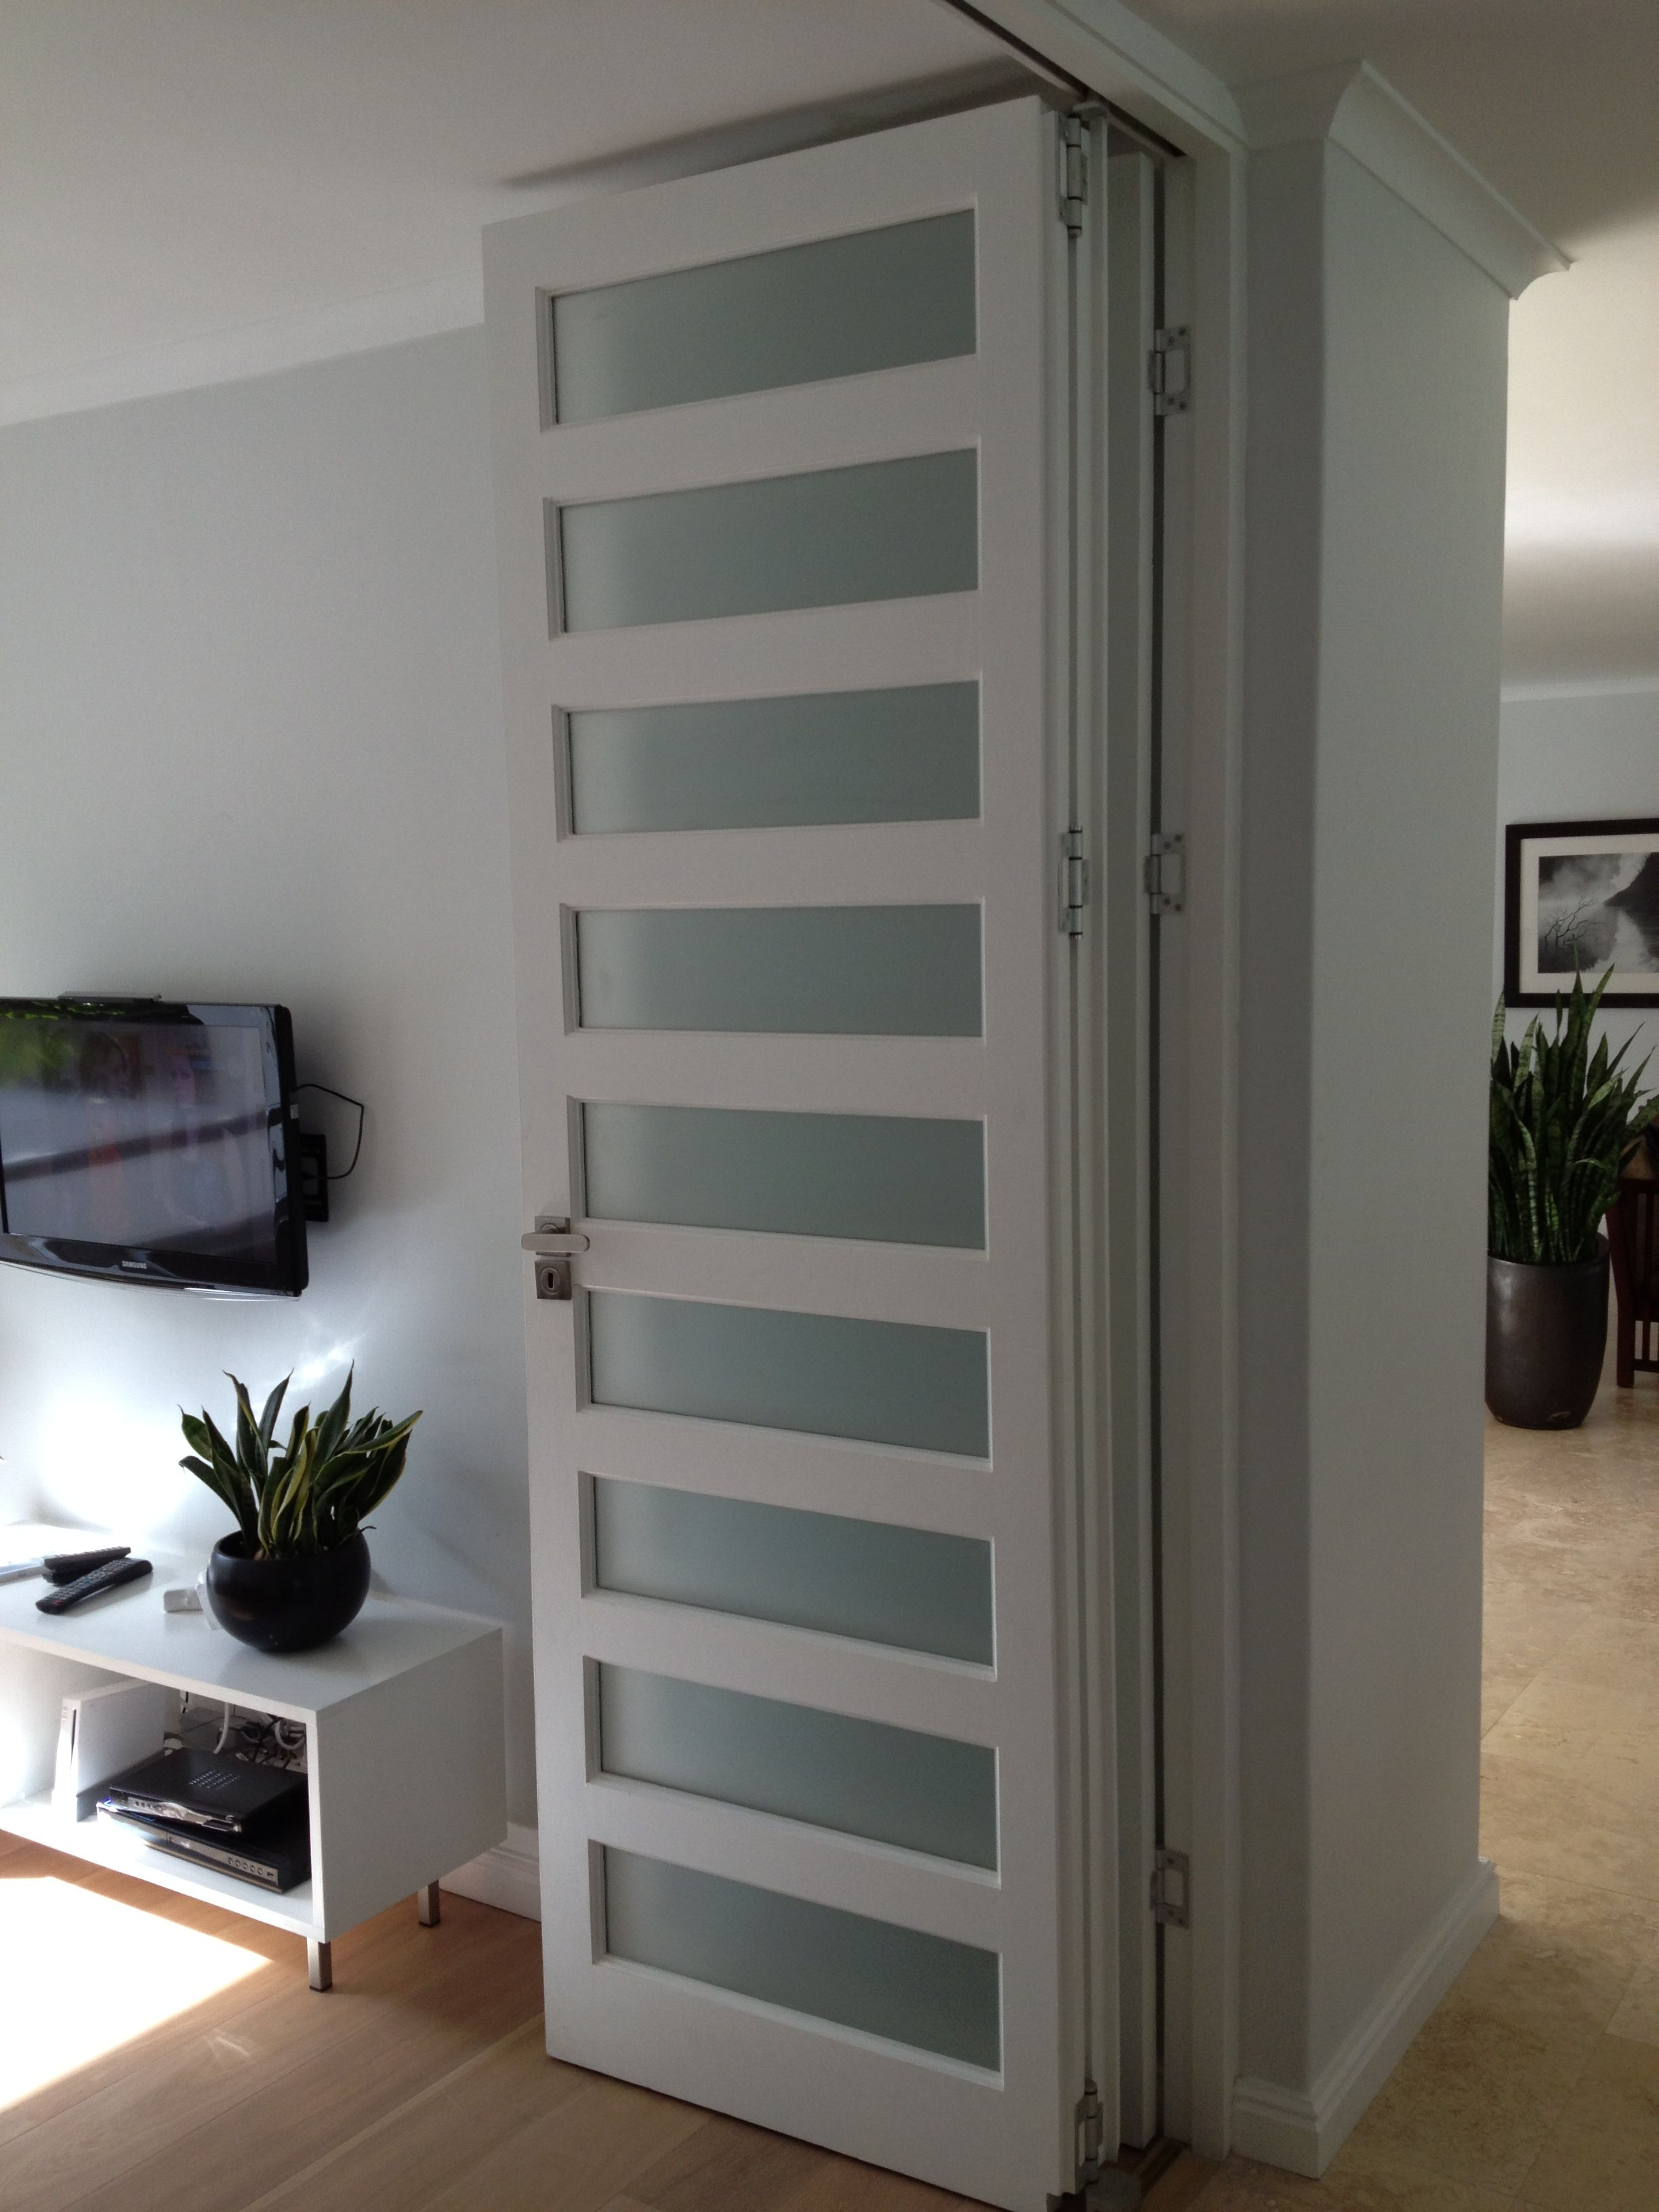 folding room divider by Door and Window Decor wwwdoorsystemscoza